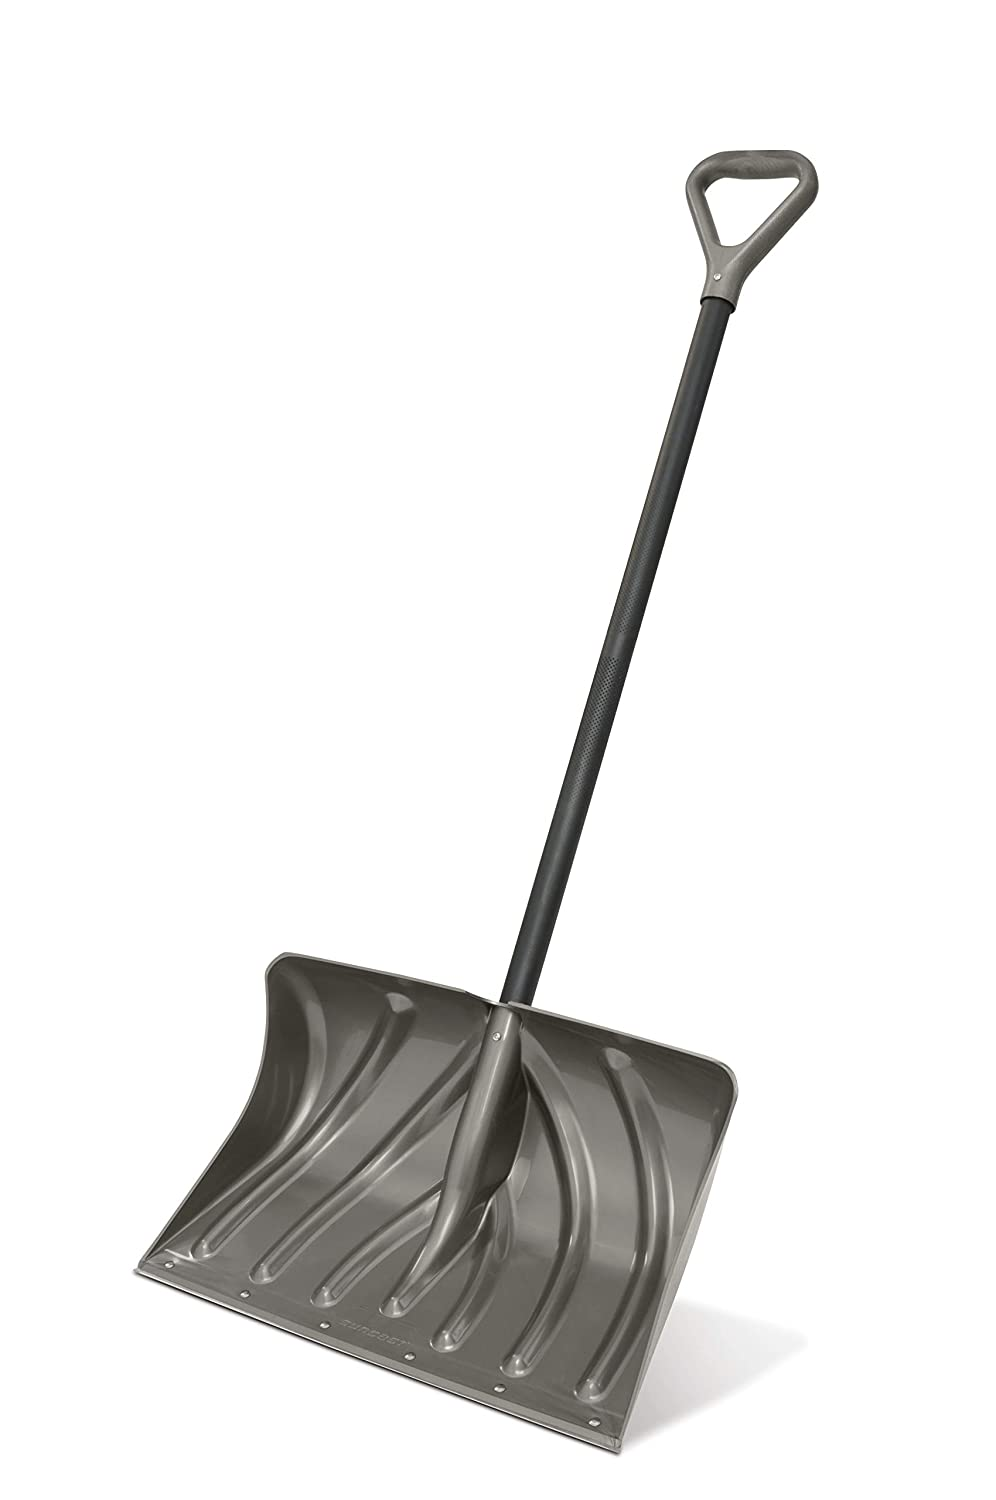 Top 10 Best Snow Shovel (2020 Reviews & Buying Guide) 4